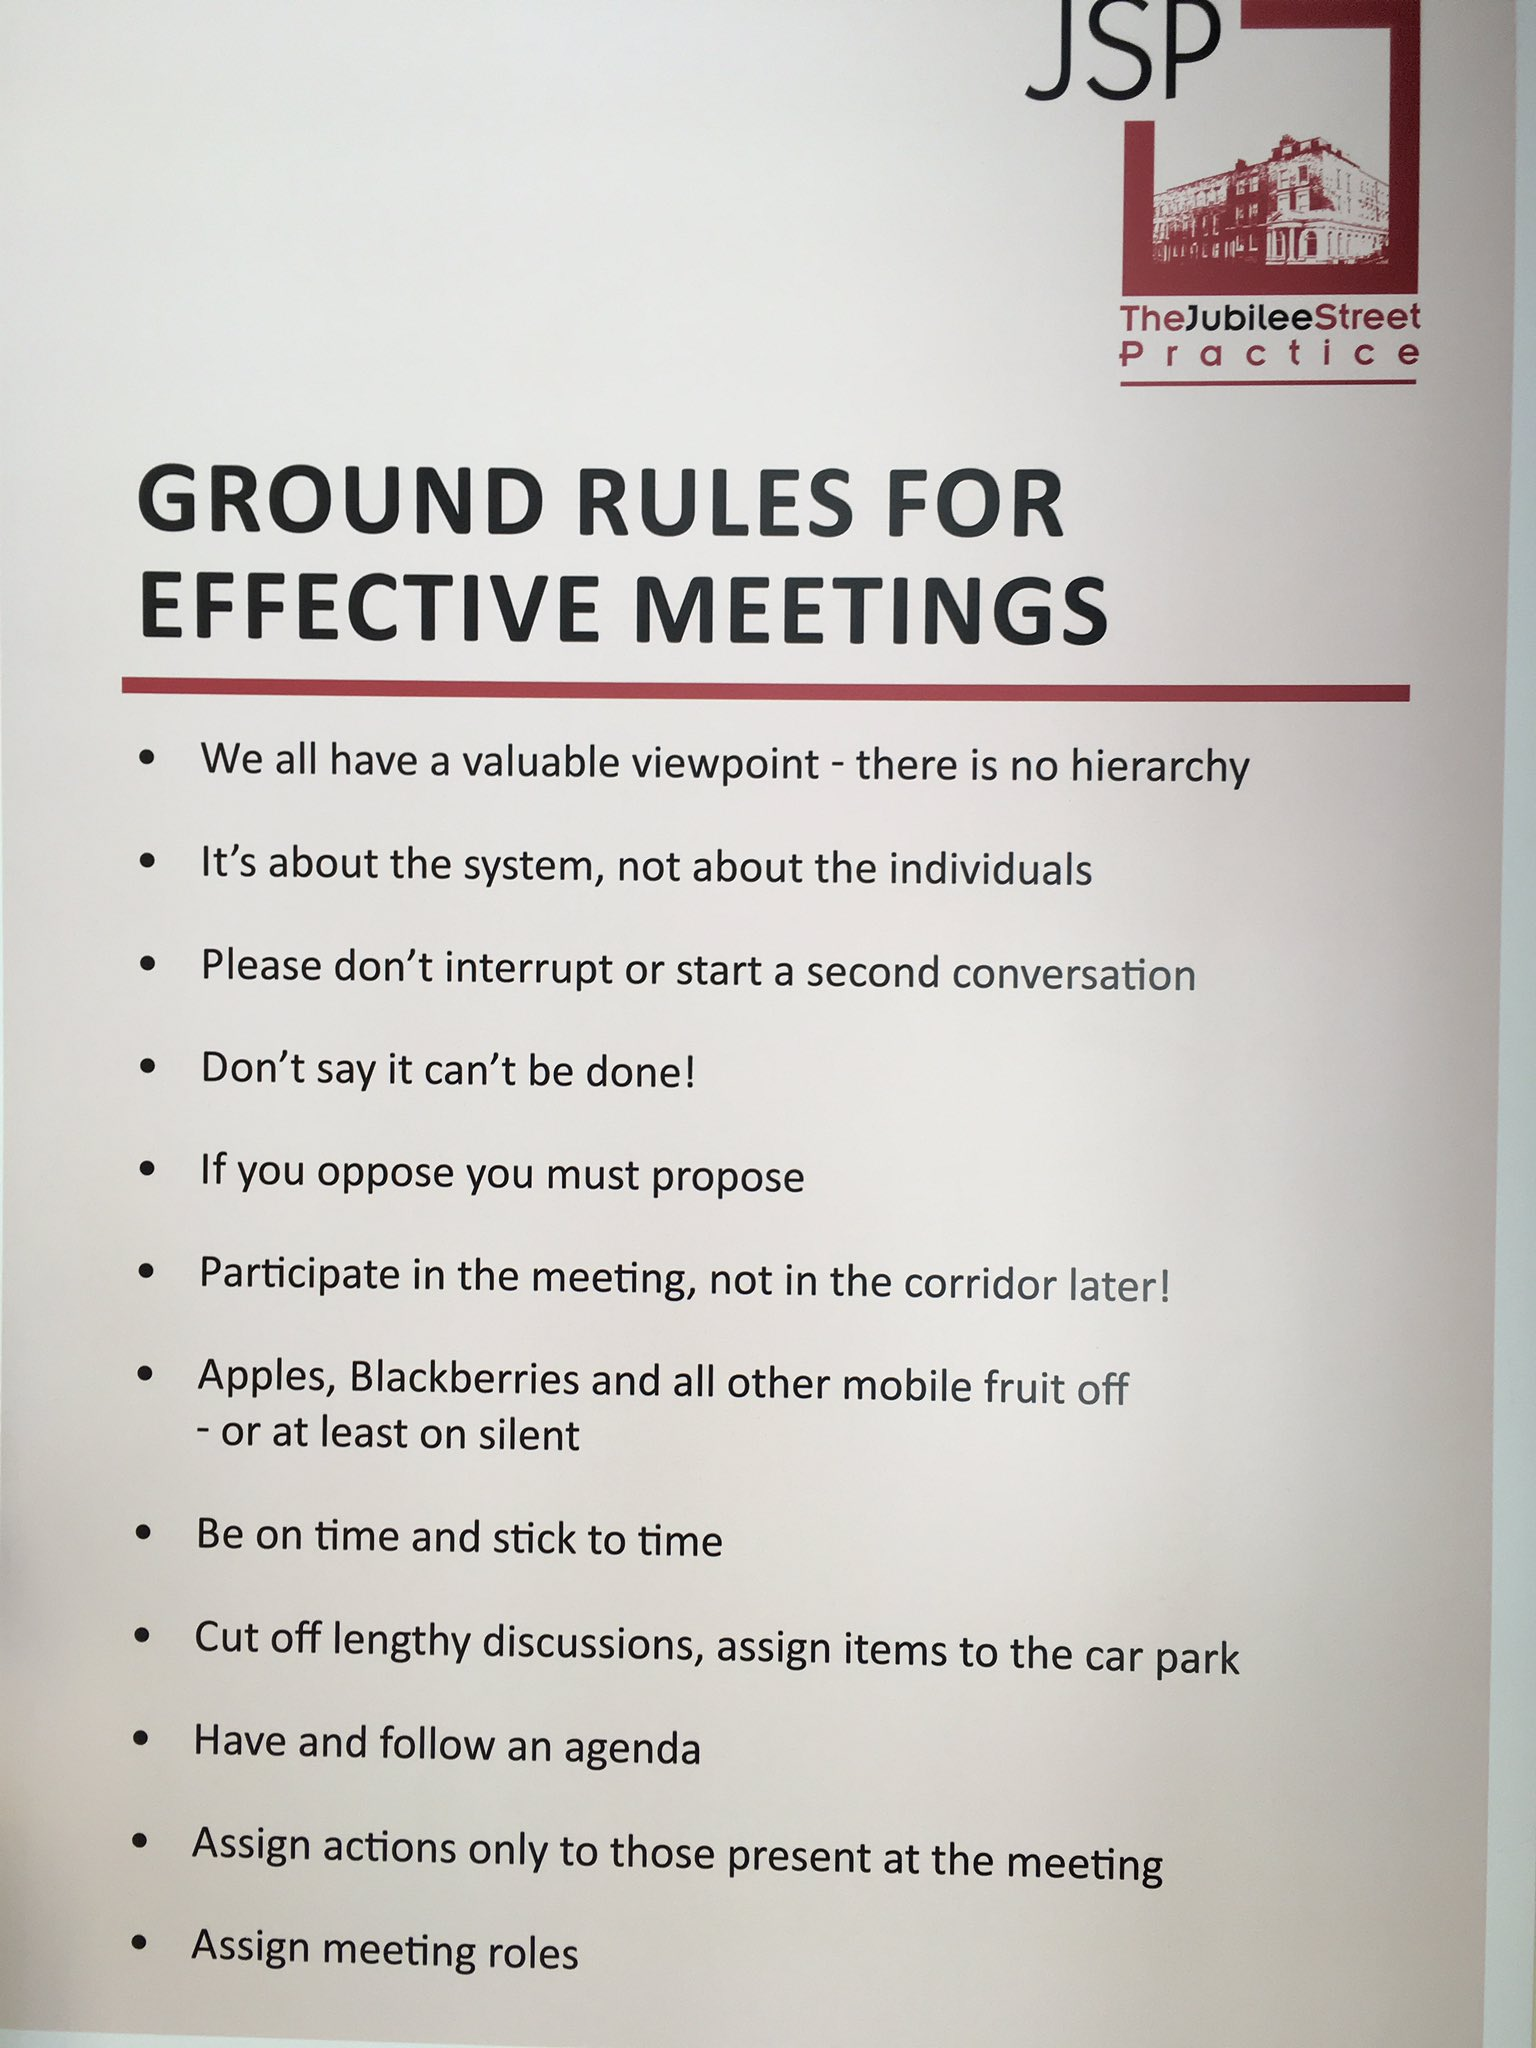 Save time at meetings with ground rules from jubilee street practice. What resonates with you? #meetings #Quality2017 #andersonprog https://t.co/wGhnxz8zyk